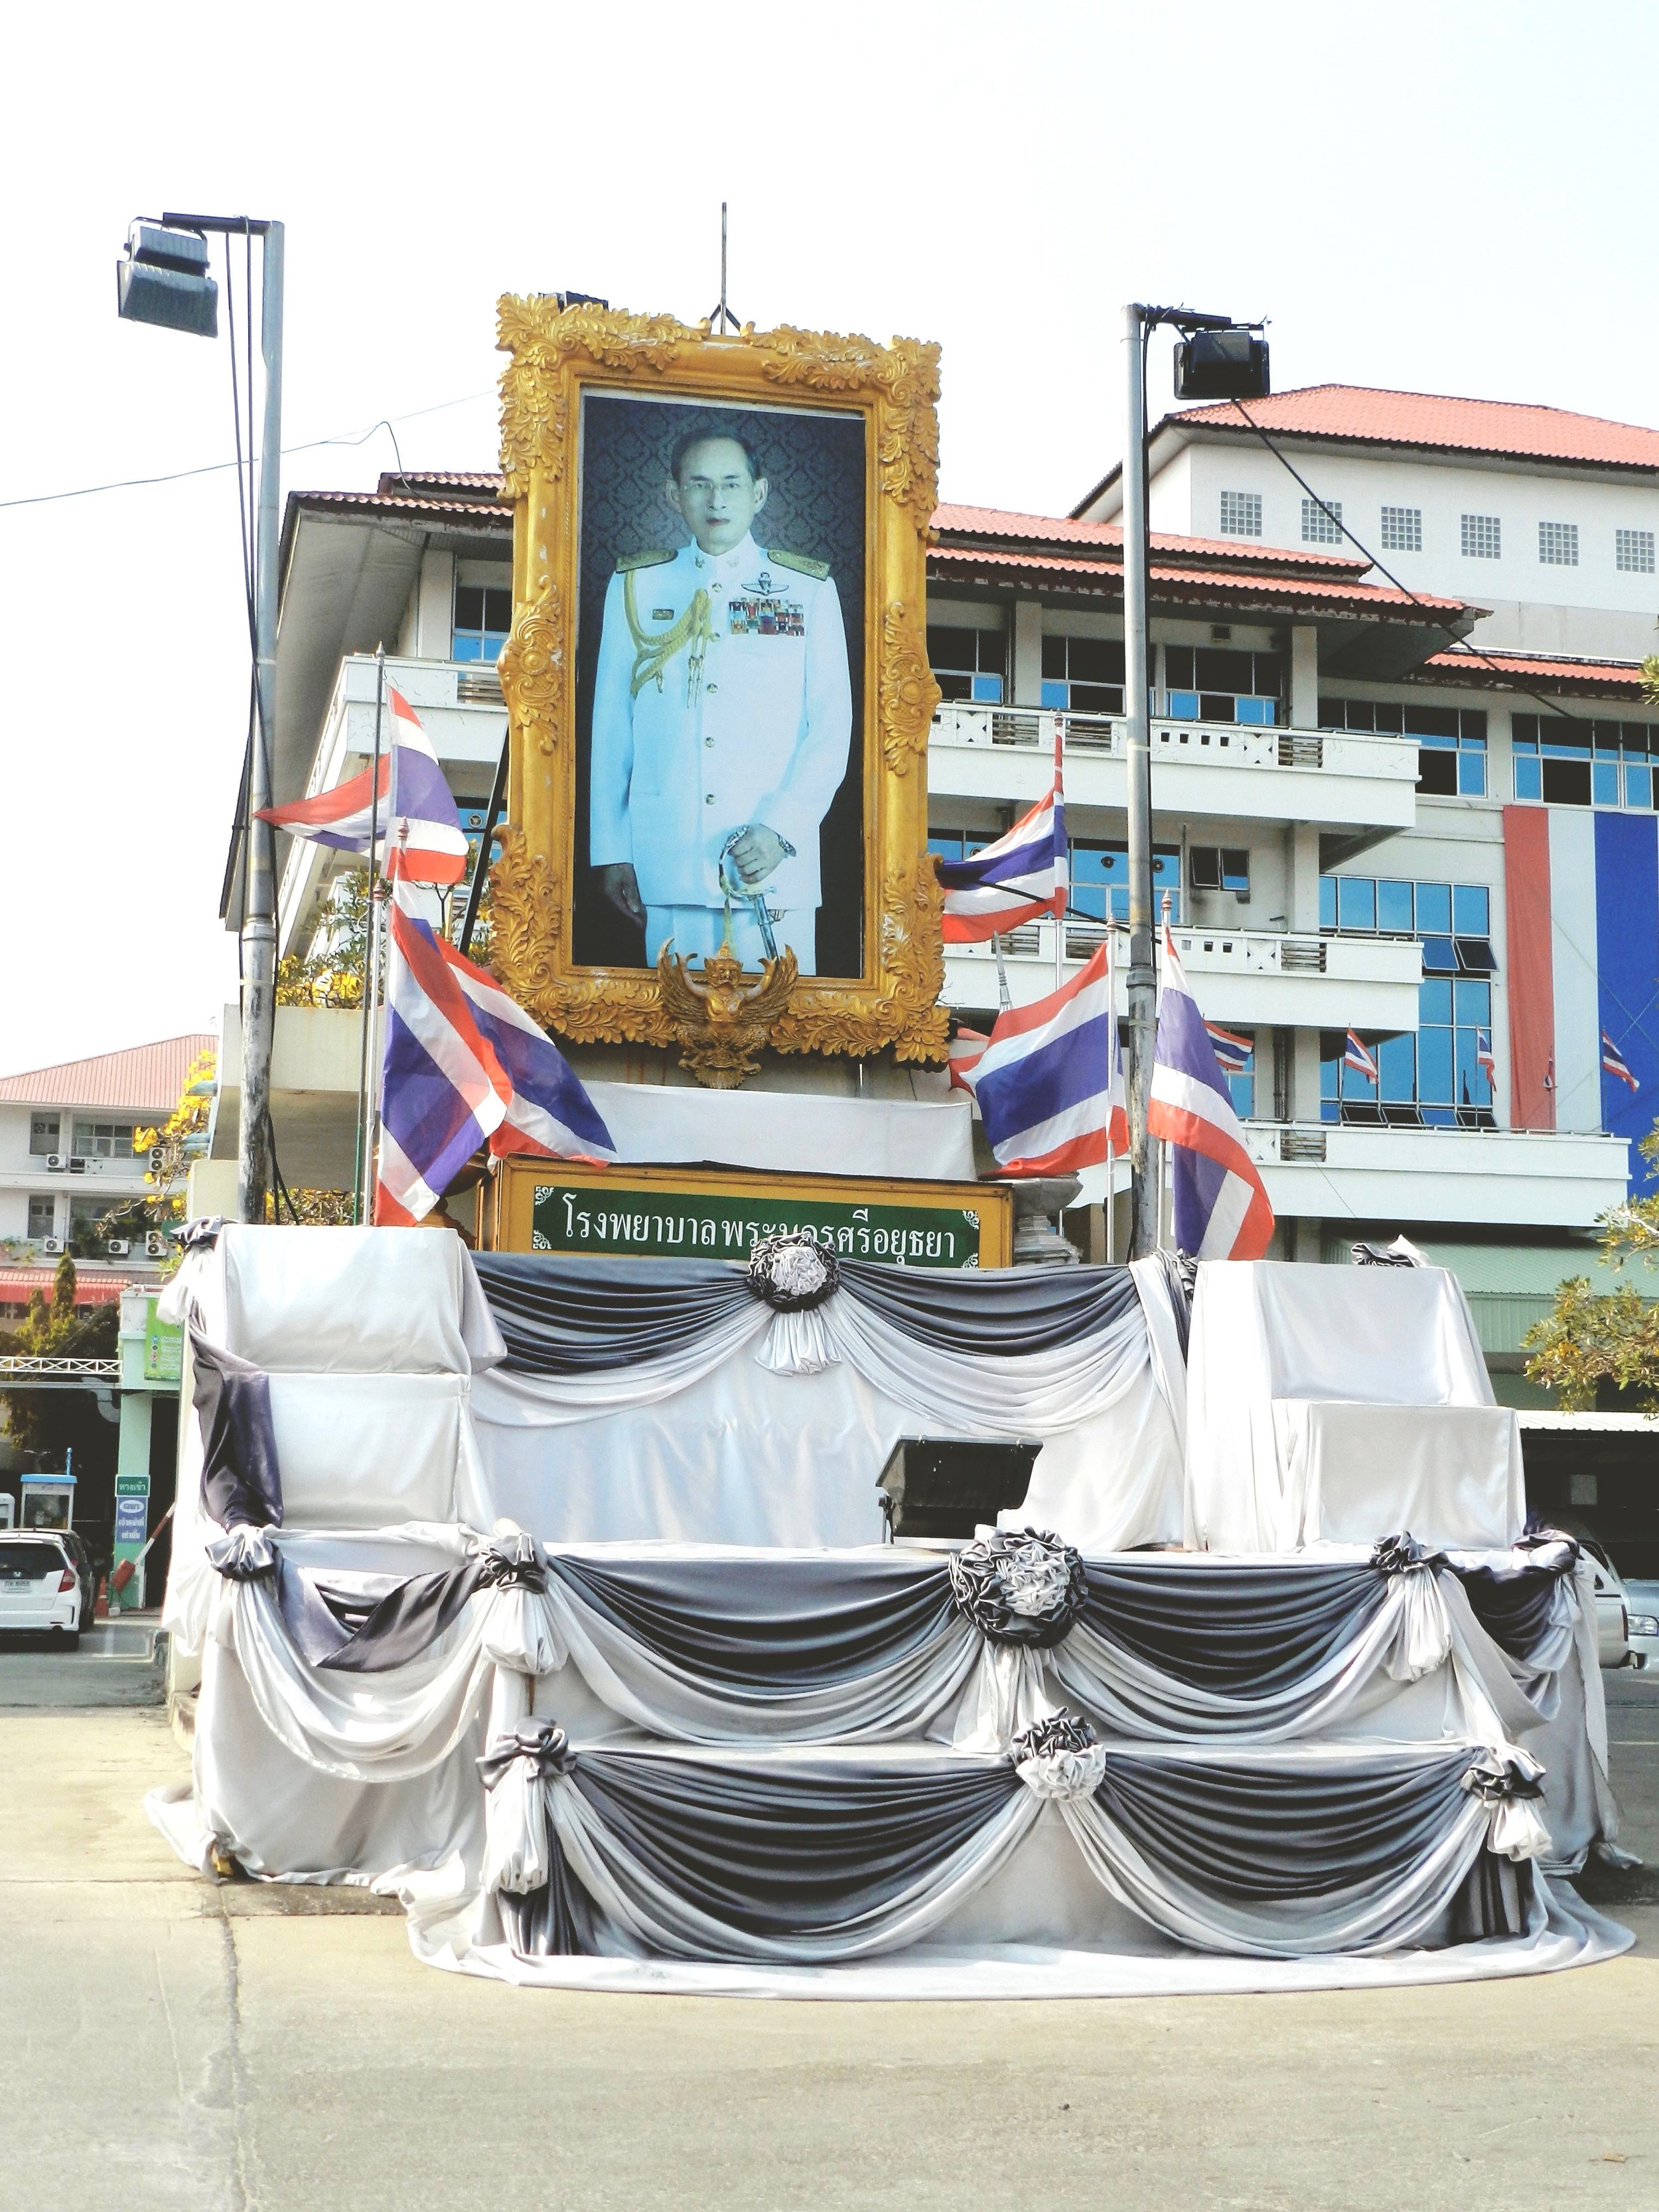 The King's anthem at the movie theater was full of images of the long-ruling King Bhumibol Adulyadej & his newly ascended son. Thailand was also full of memorials with official portraits like the one above & very strict about respect for the monarchy. We kept our normal snark in check.